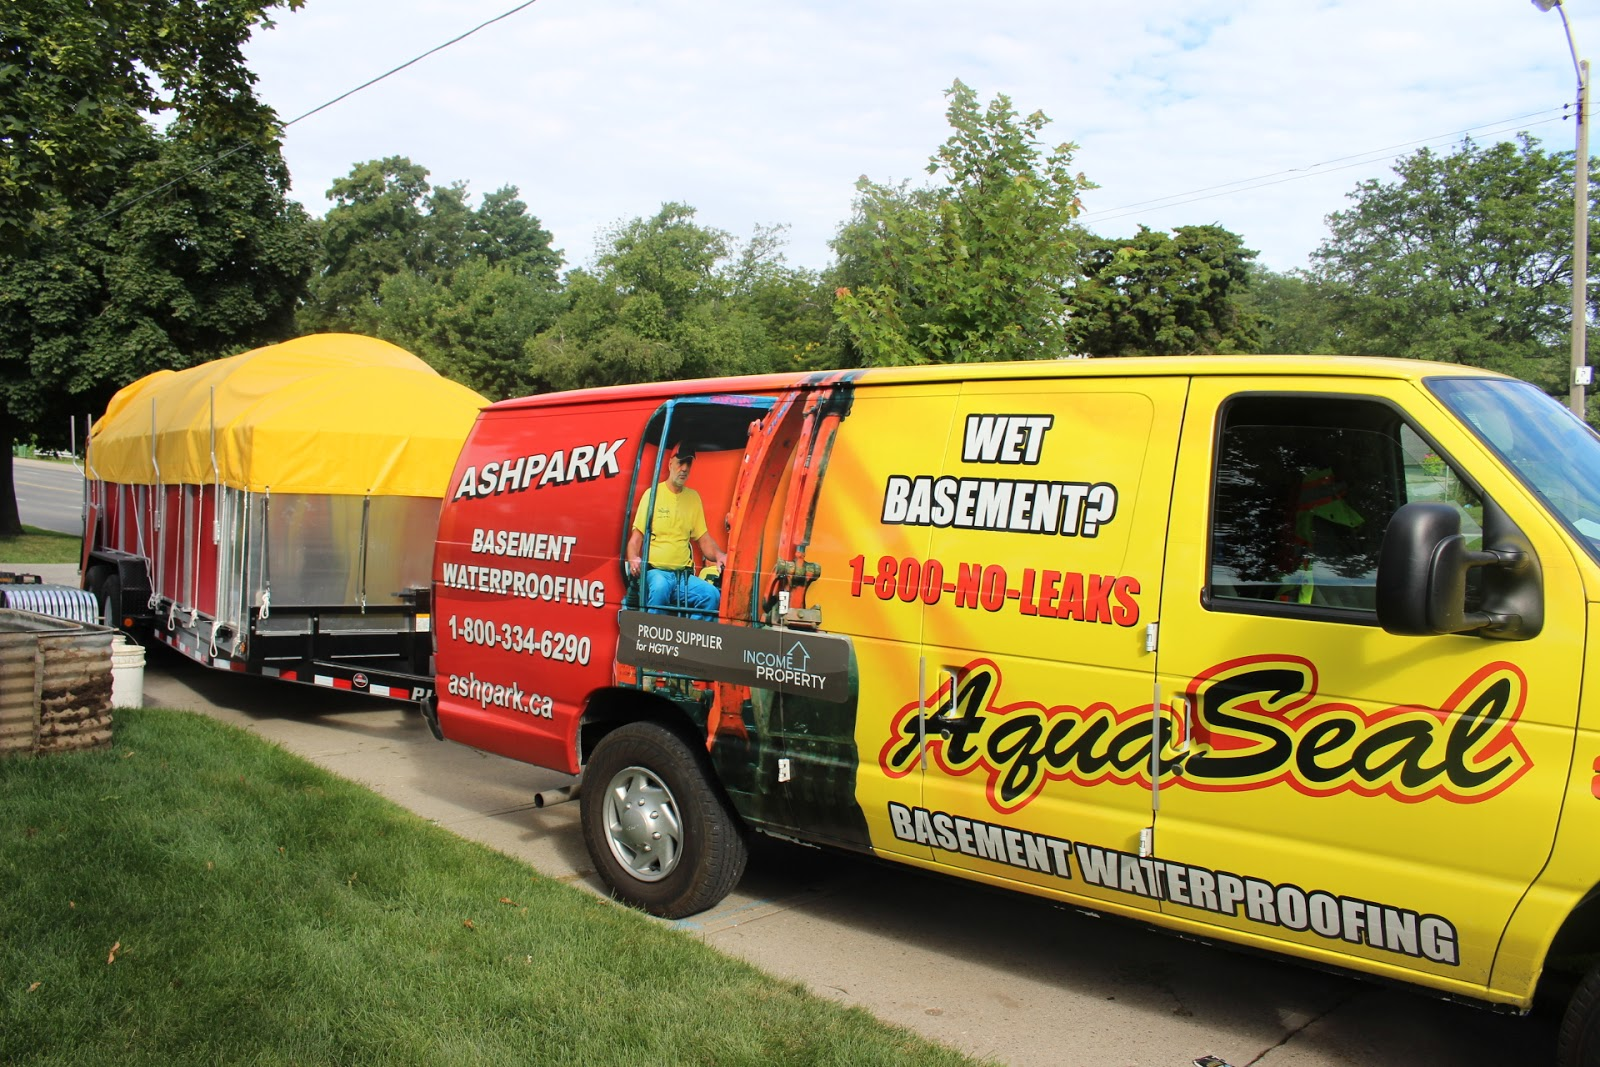 Aquaseal London Licensed Basement Waterproofing Contractors London in London Ontario 1-800-NO-LEAKS